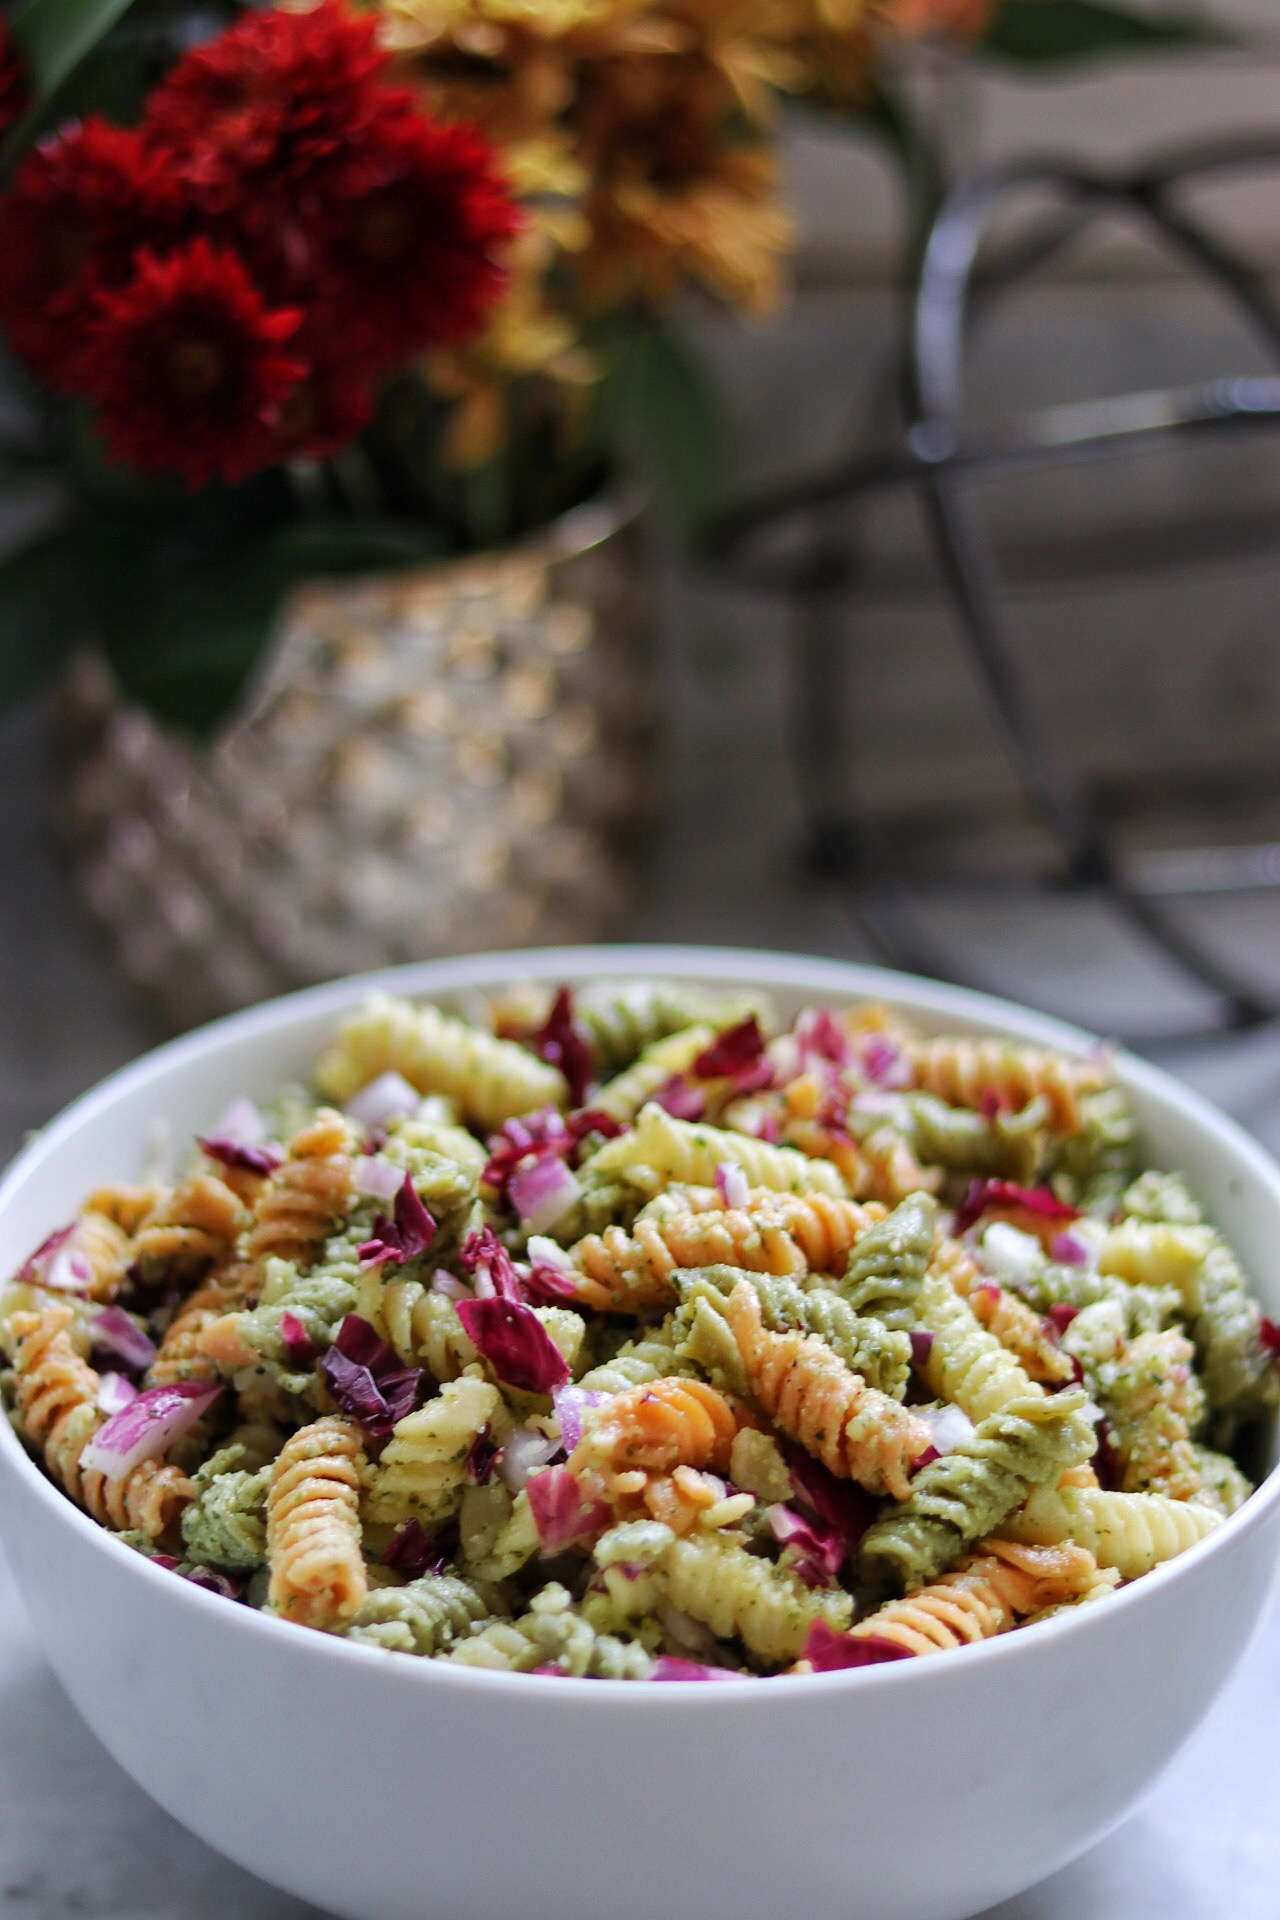 Corkscrew pasta is tossed with homemade pesto, chopped radicchio, and a bit of mayo for added creaminess. Refrigerate the salad for at least 30 minutes before serving — the flavor gets better with time.